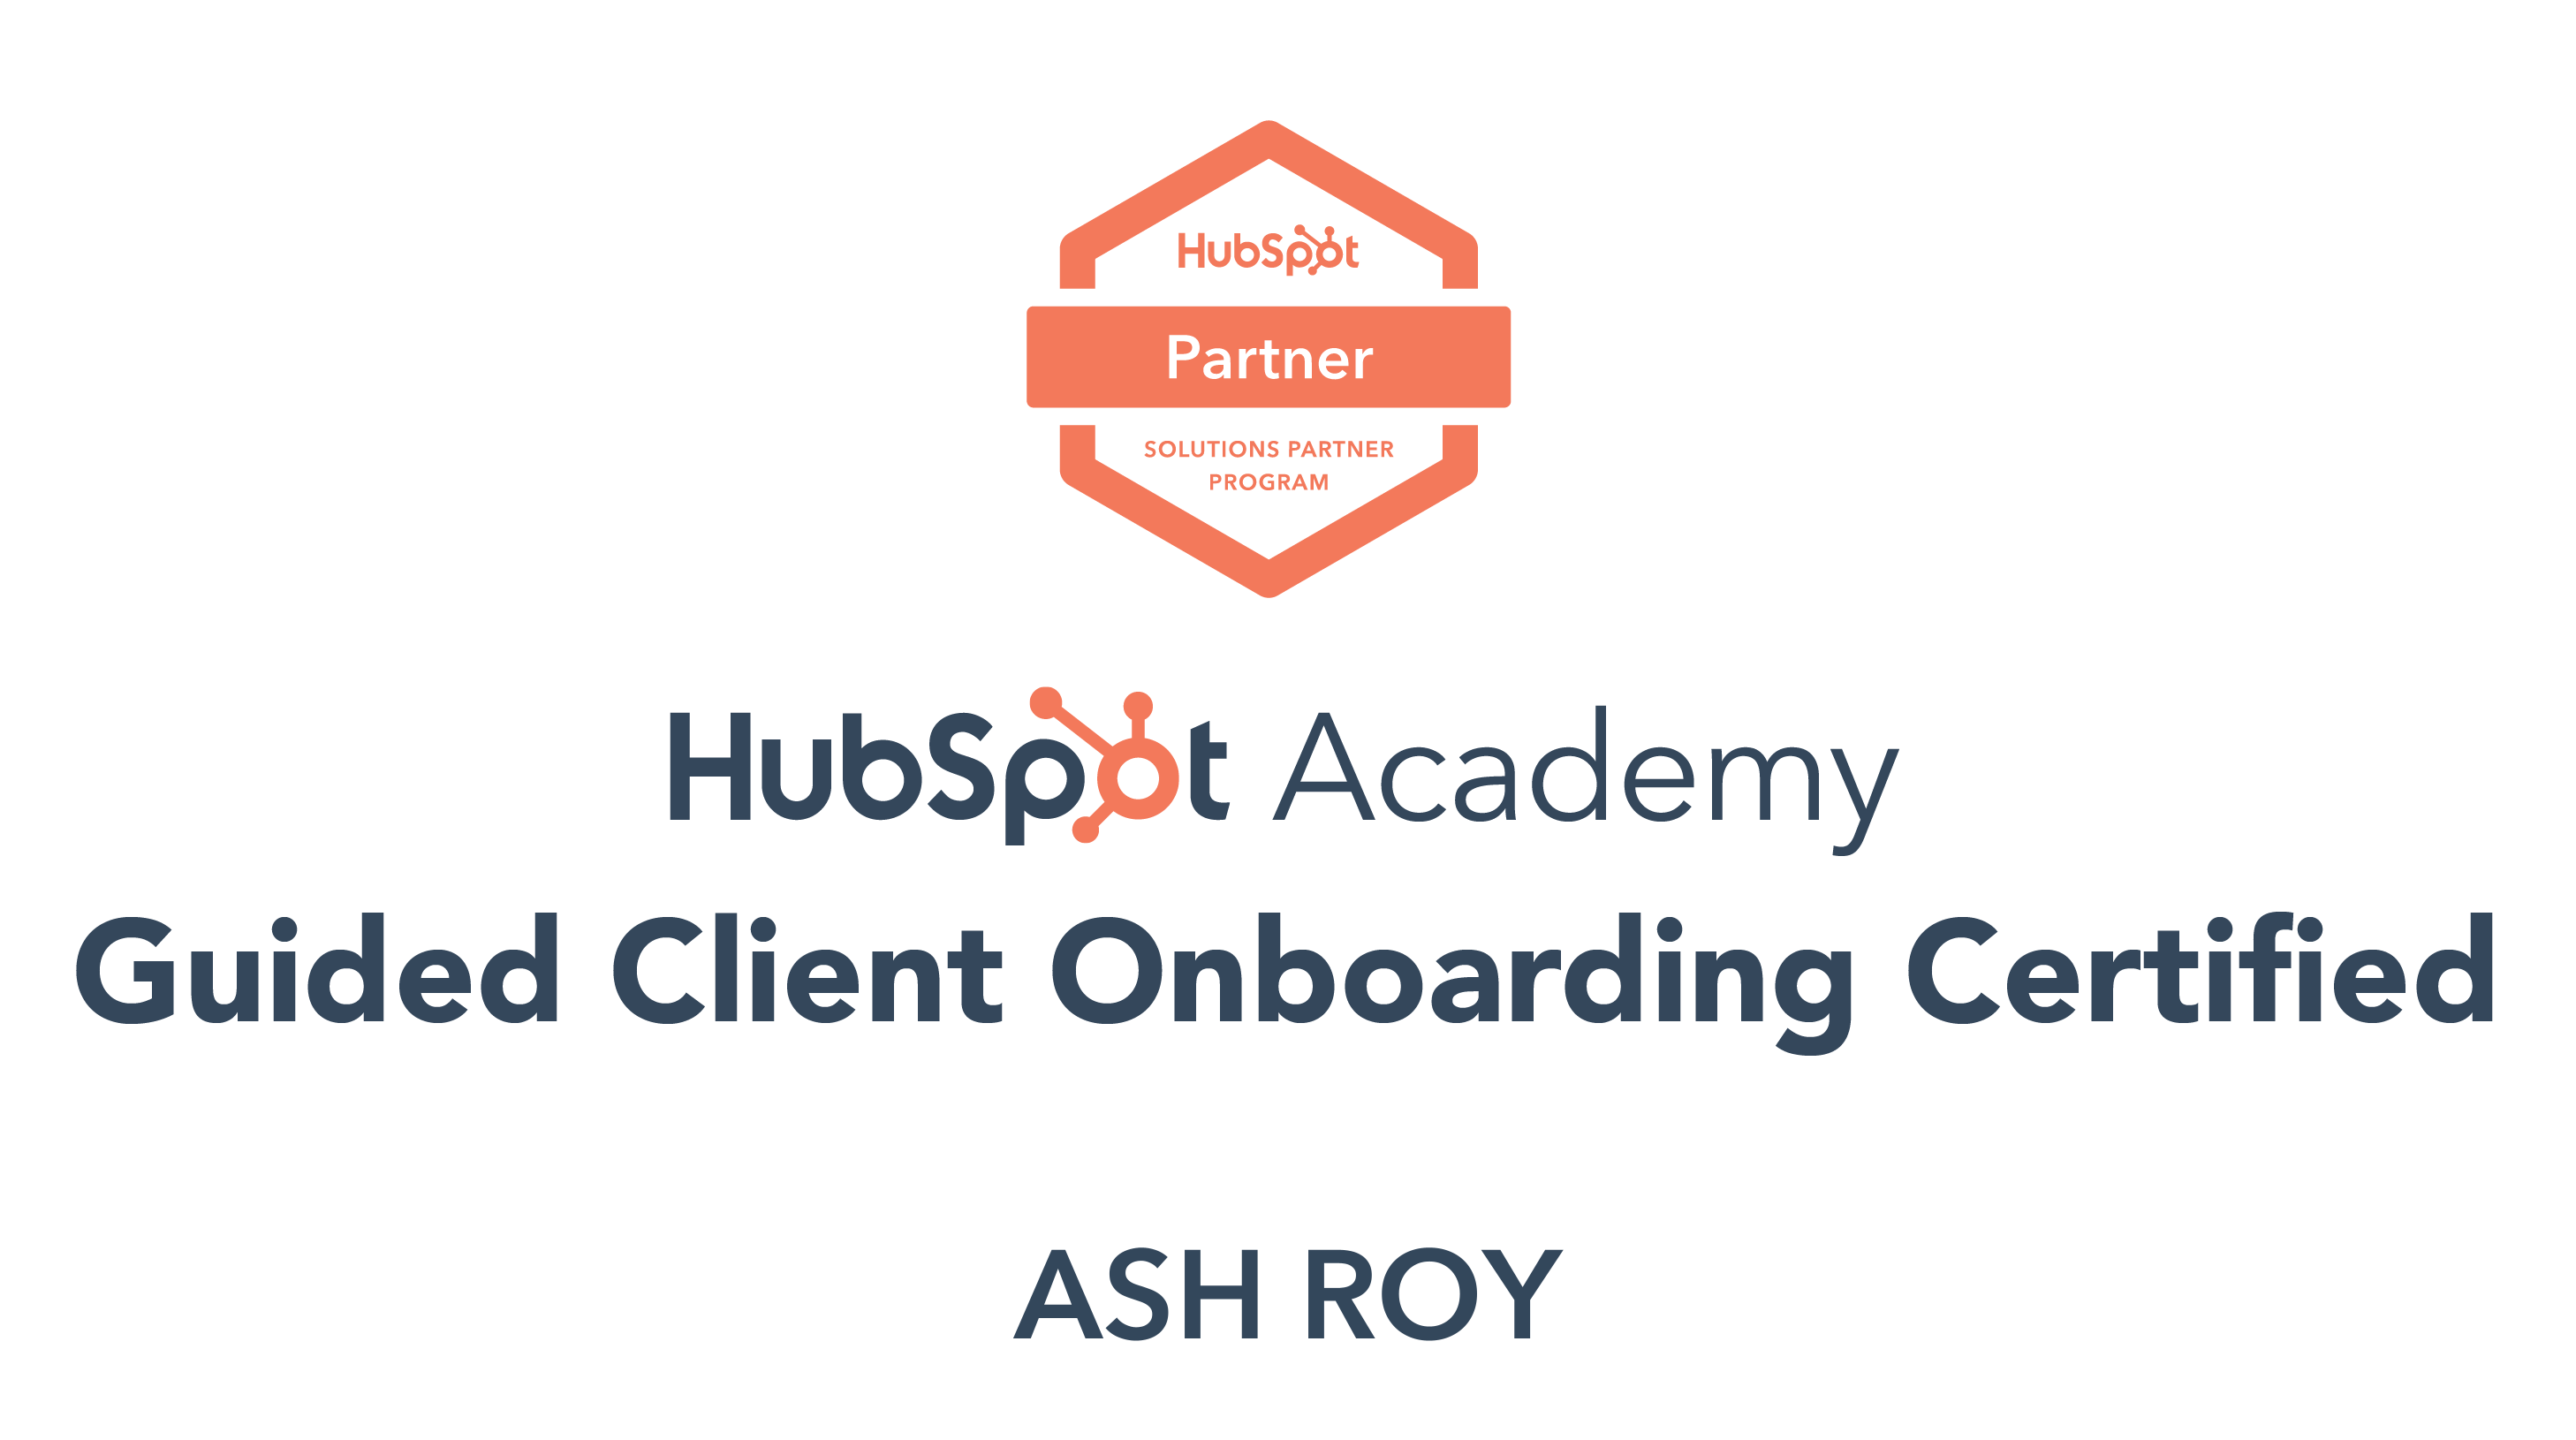 Guided Client Onboarding